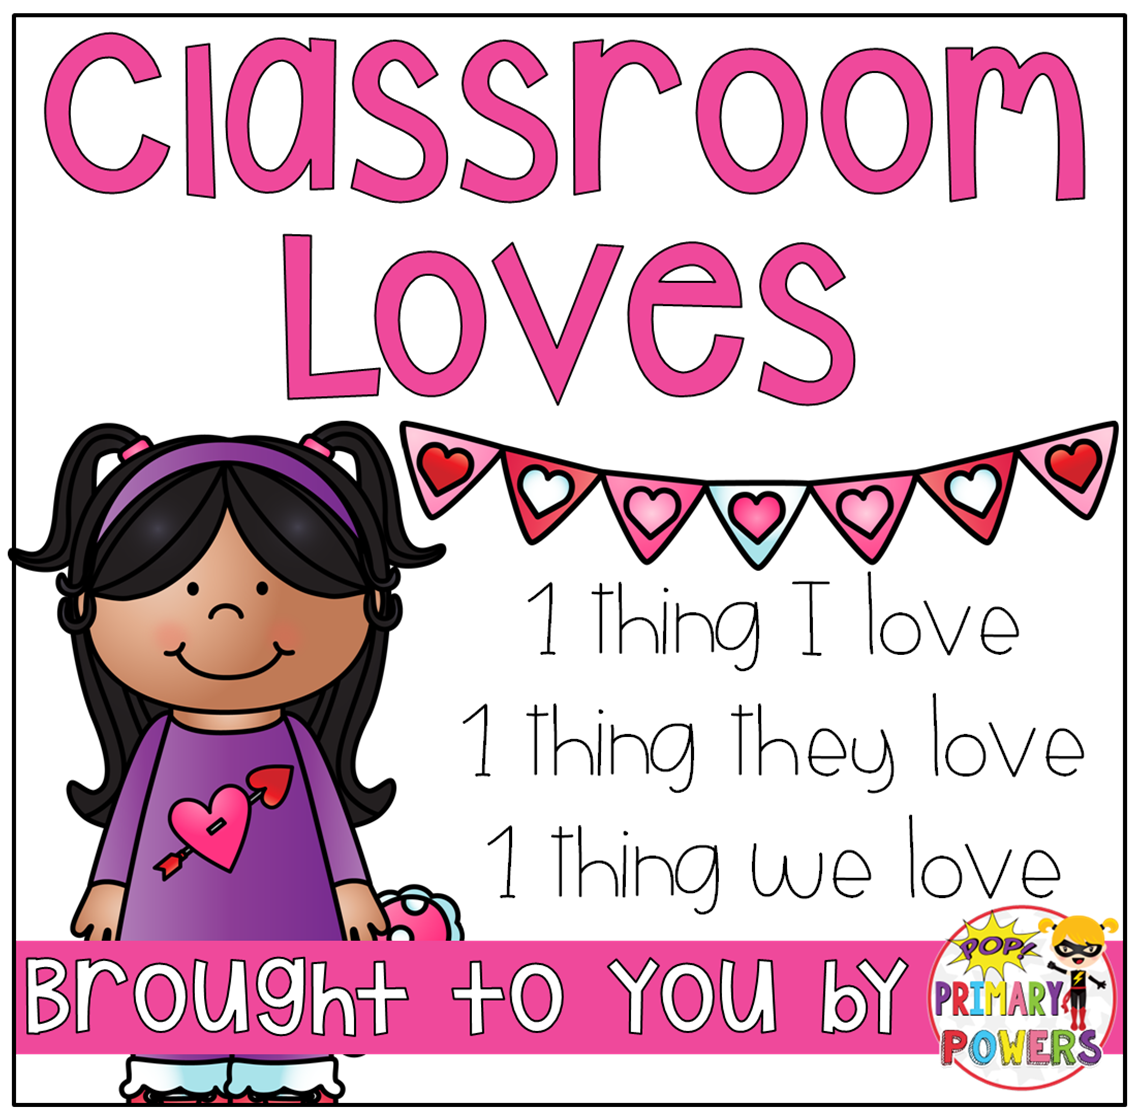 http://primarypowers.blogspot.com/2015/02/classroom-loves-linky.html